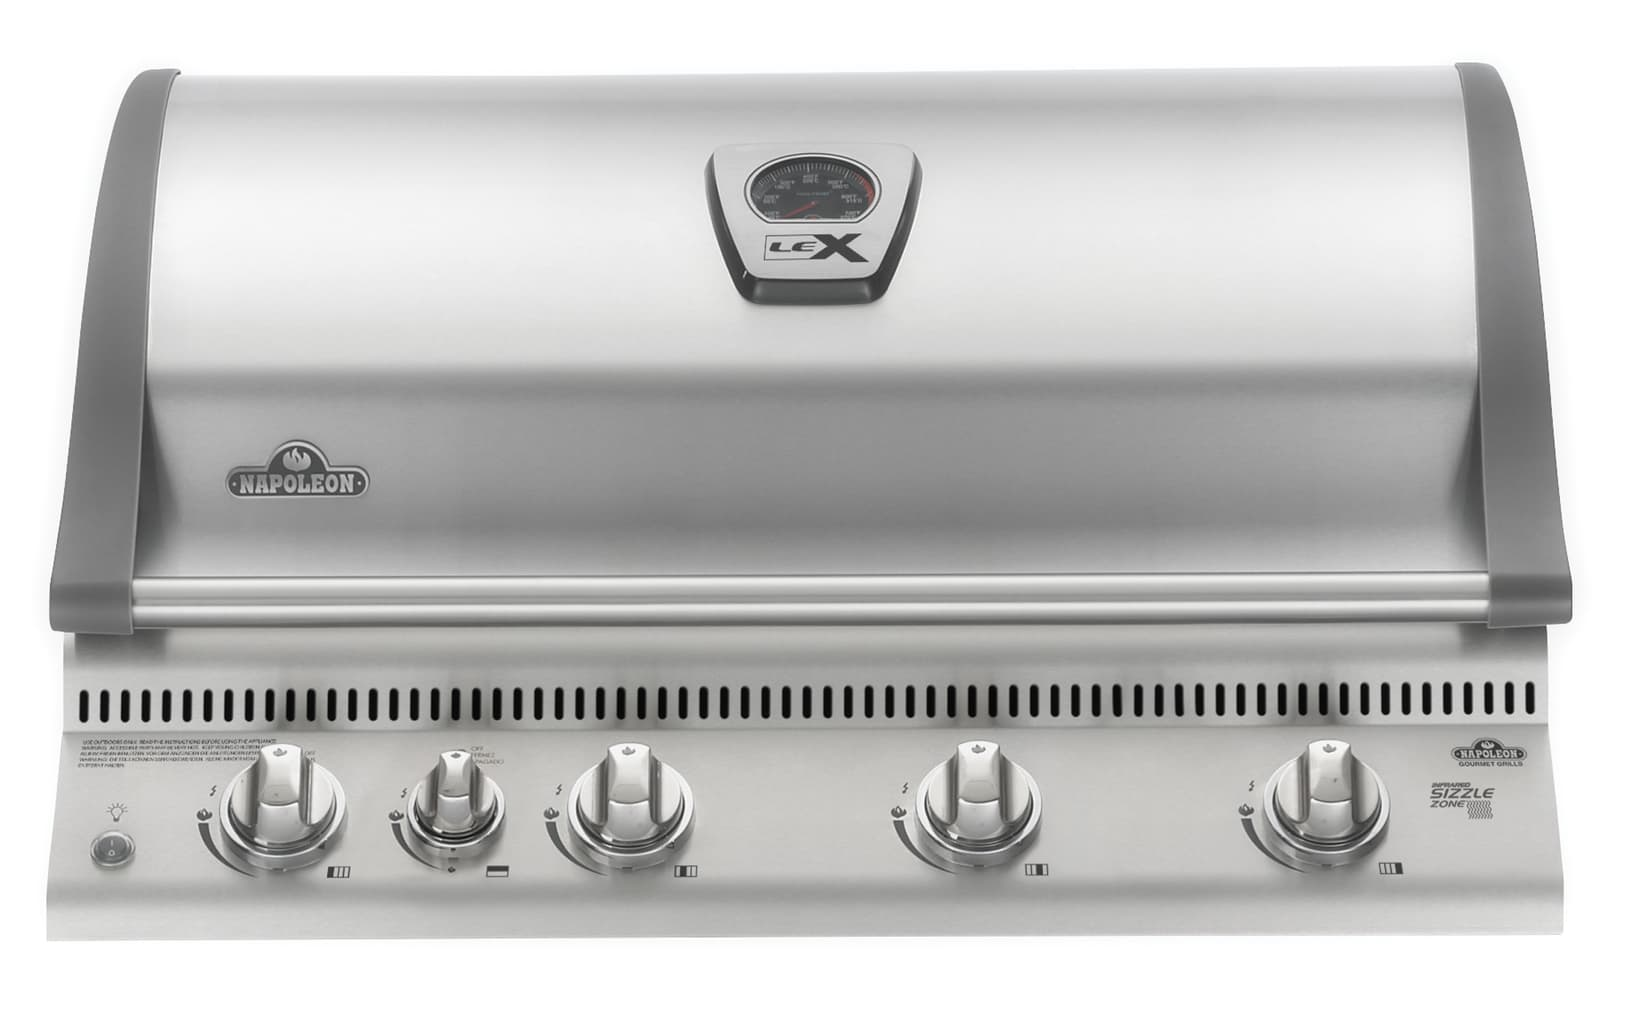 Napoleon Built-in LEX 605 with Infrared Bottom and Rear Burners - Stainless Steel - Propane